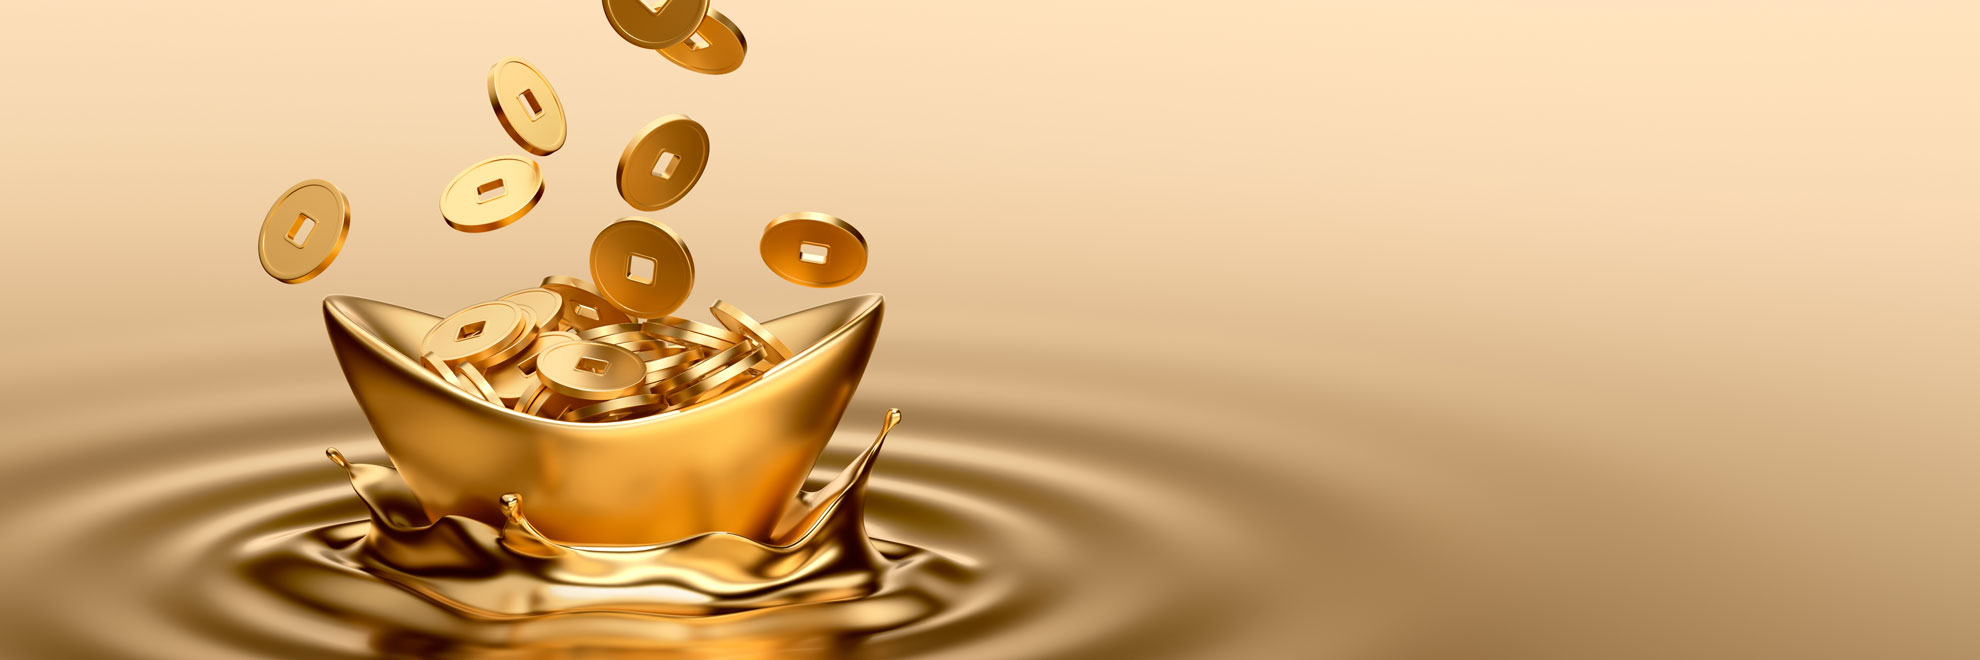 Gold Puddle